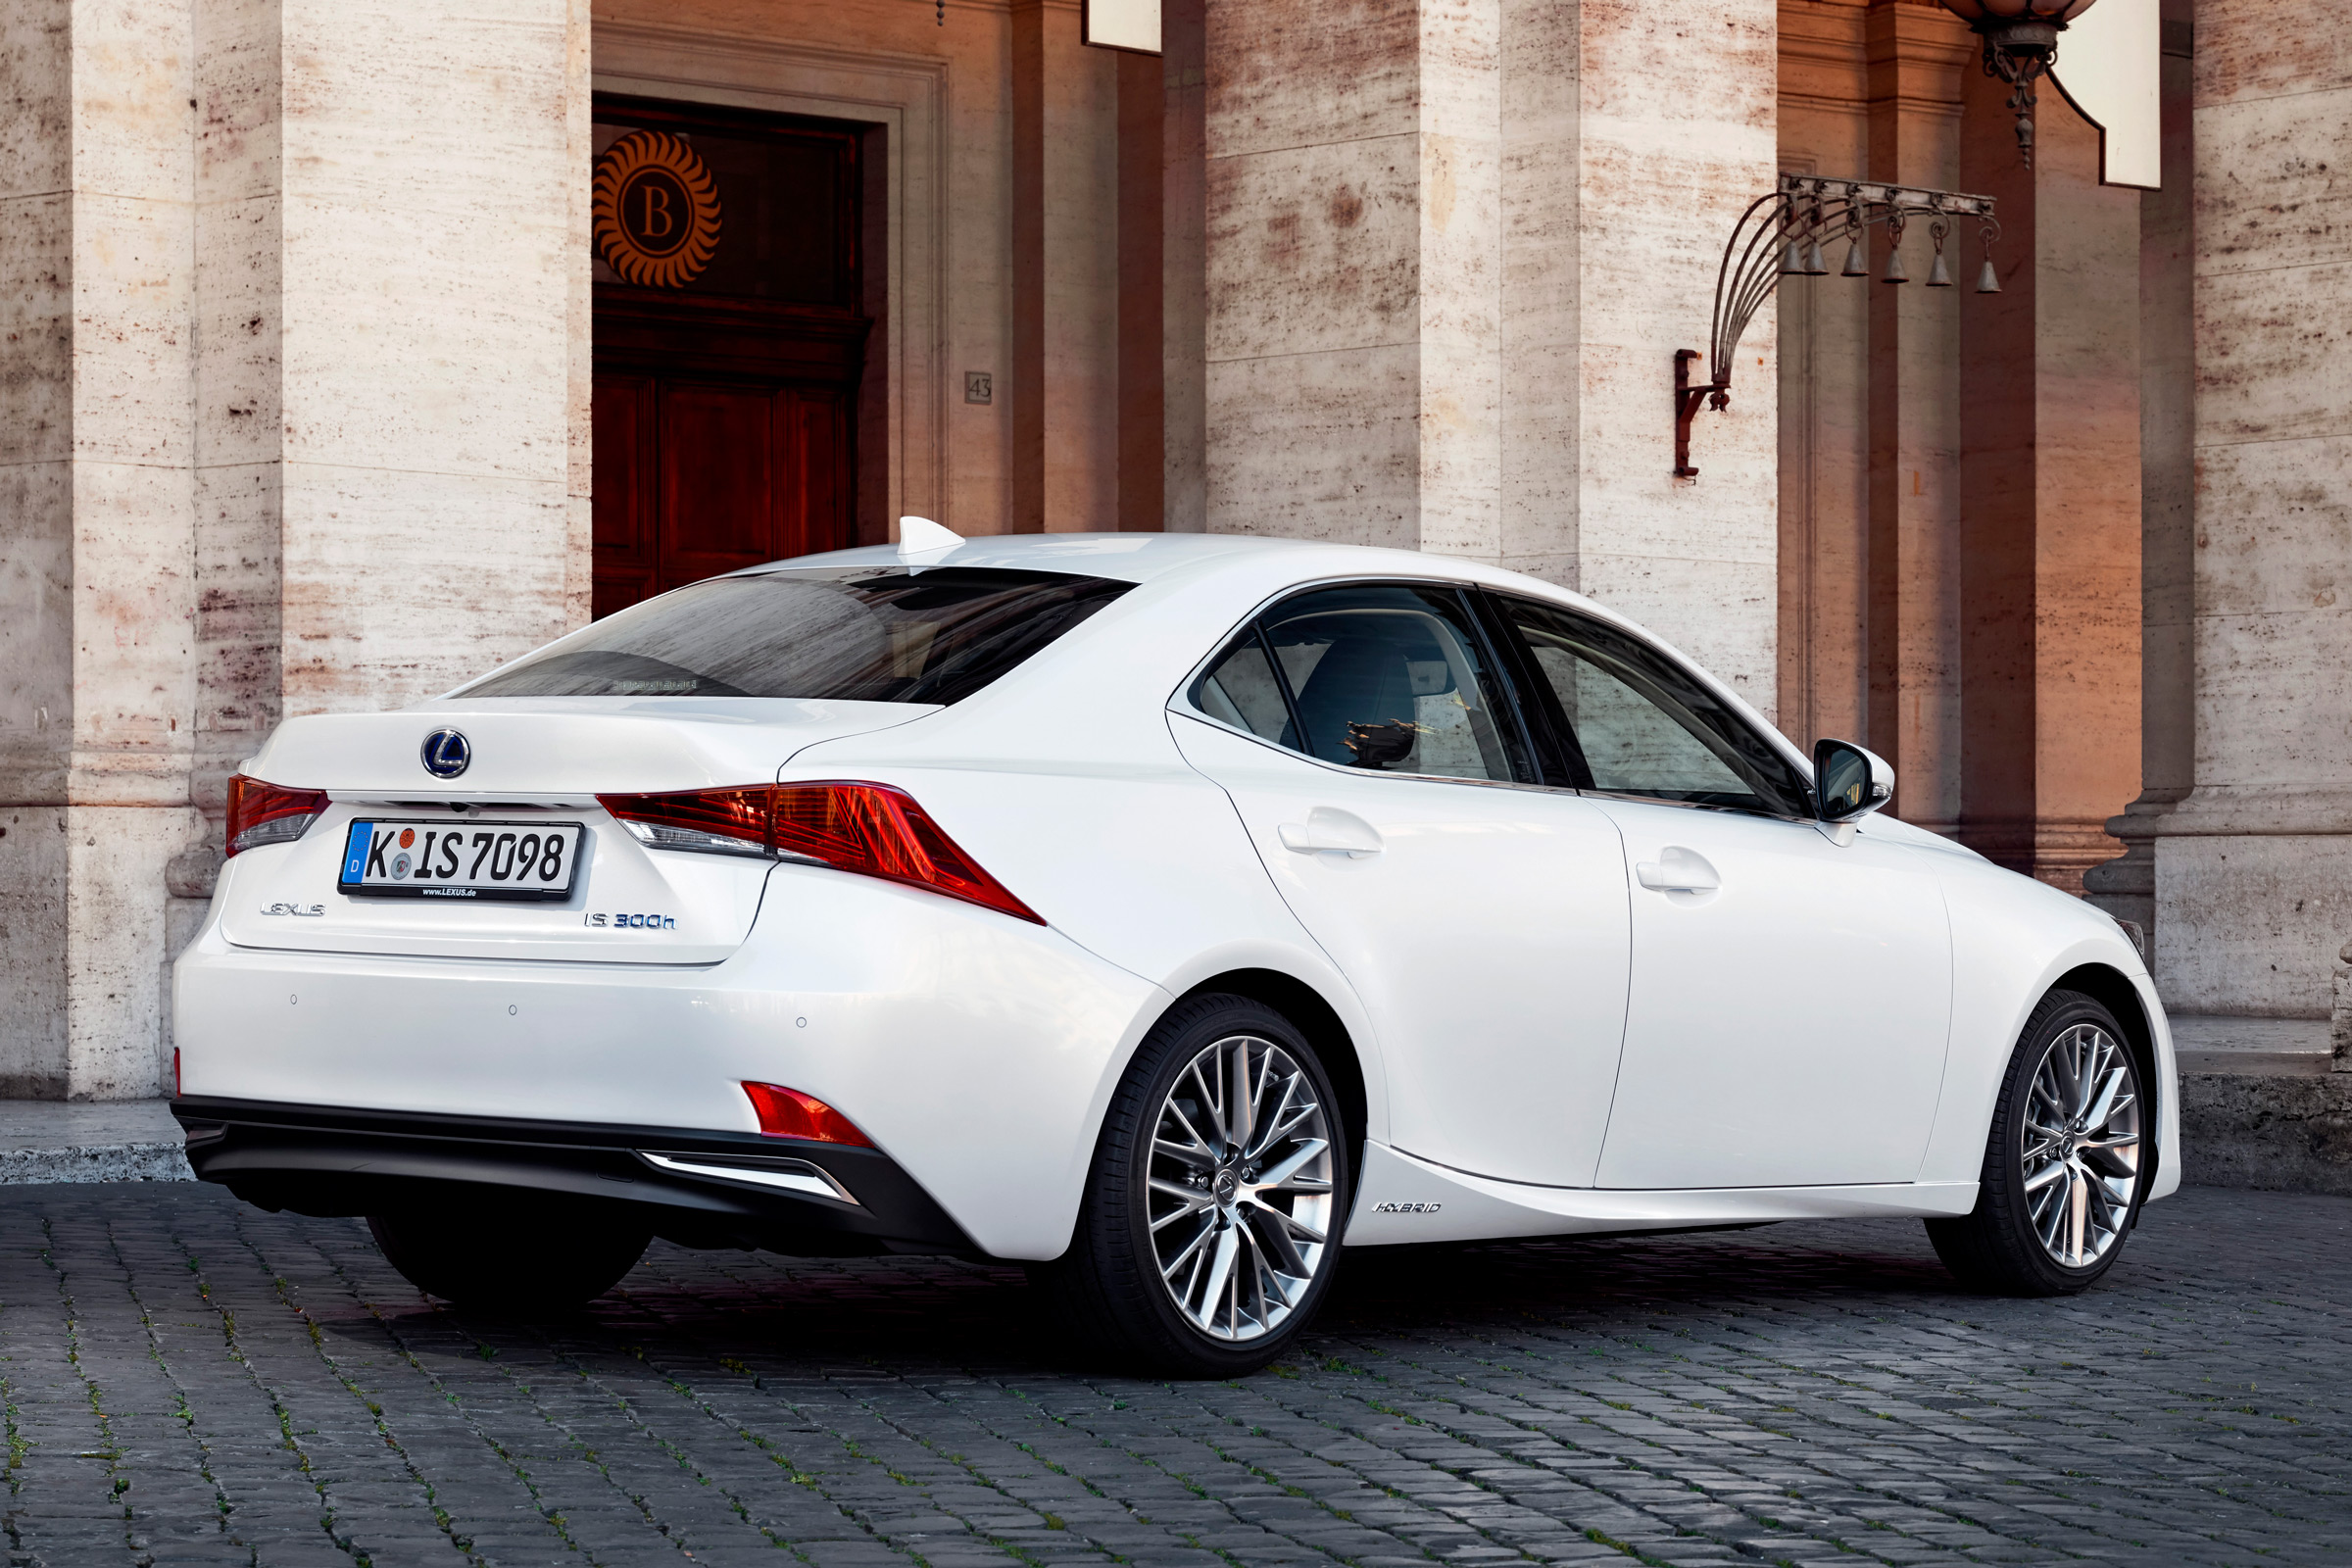 2017 Lexus IS 300h White Exterior Rear And Side (Photo 10 of 13)